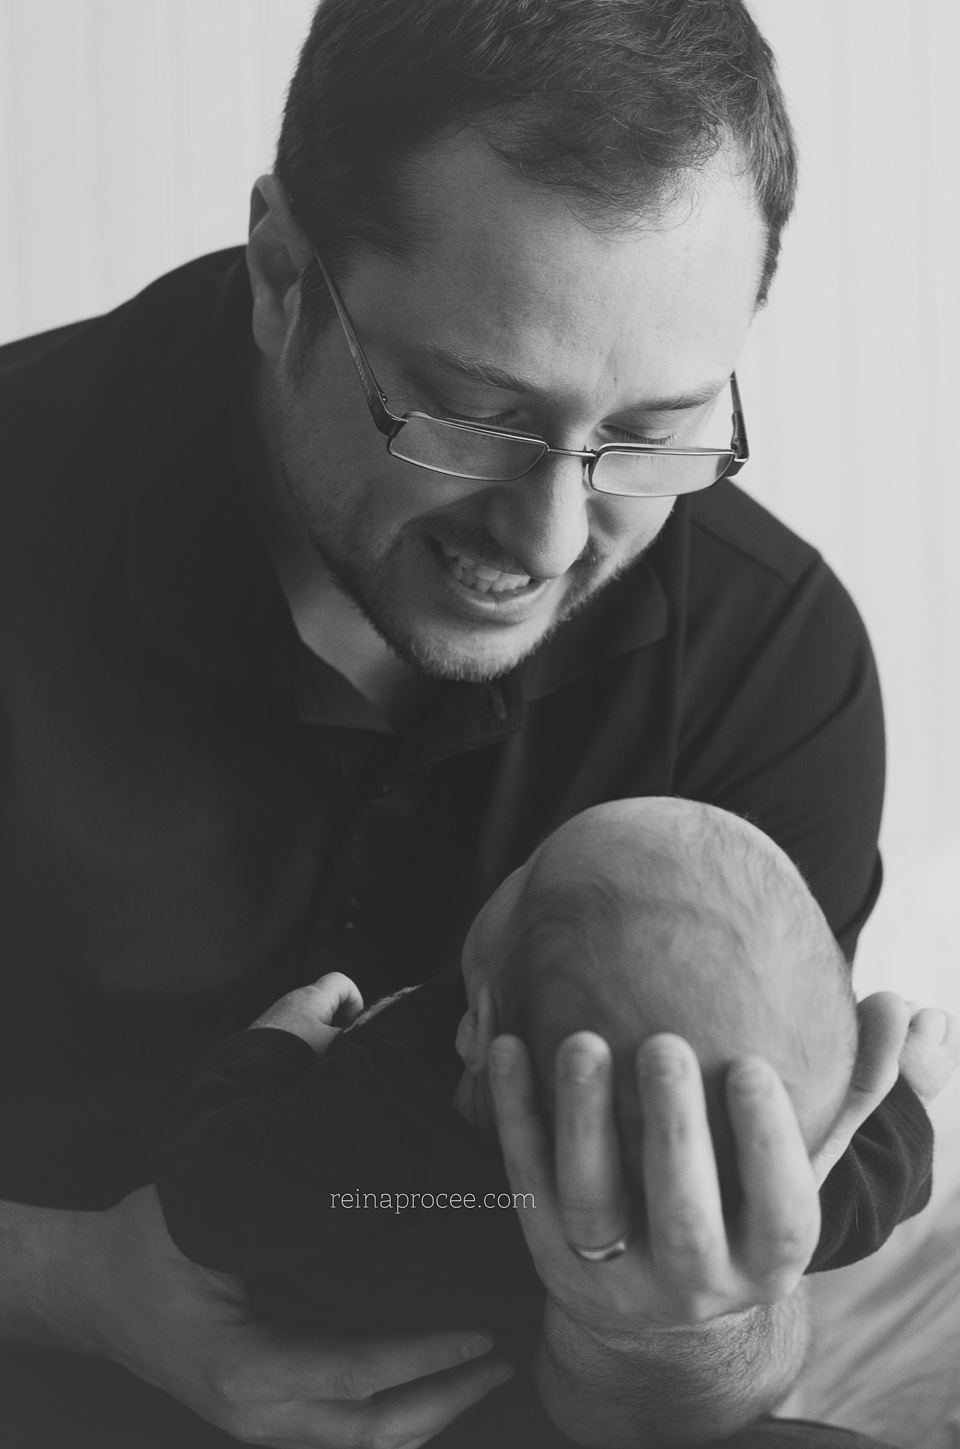 dad holding and smiling at newborn baby son